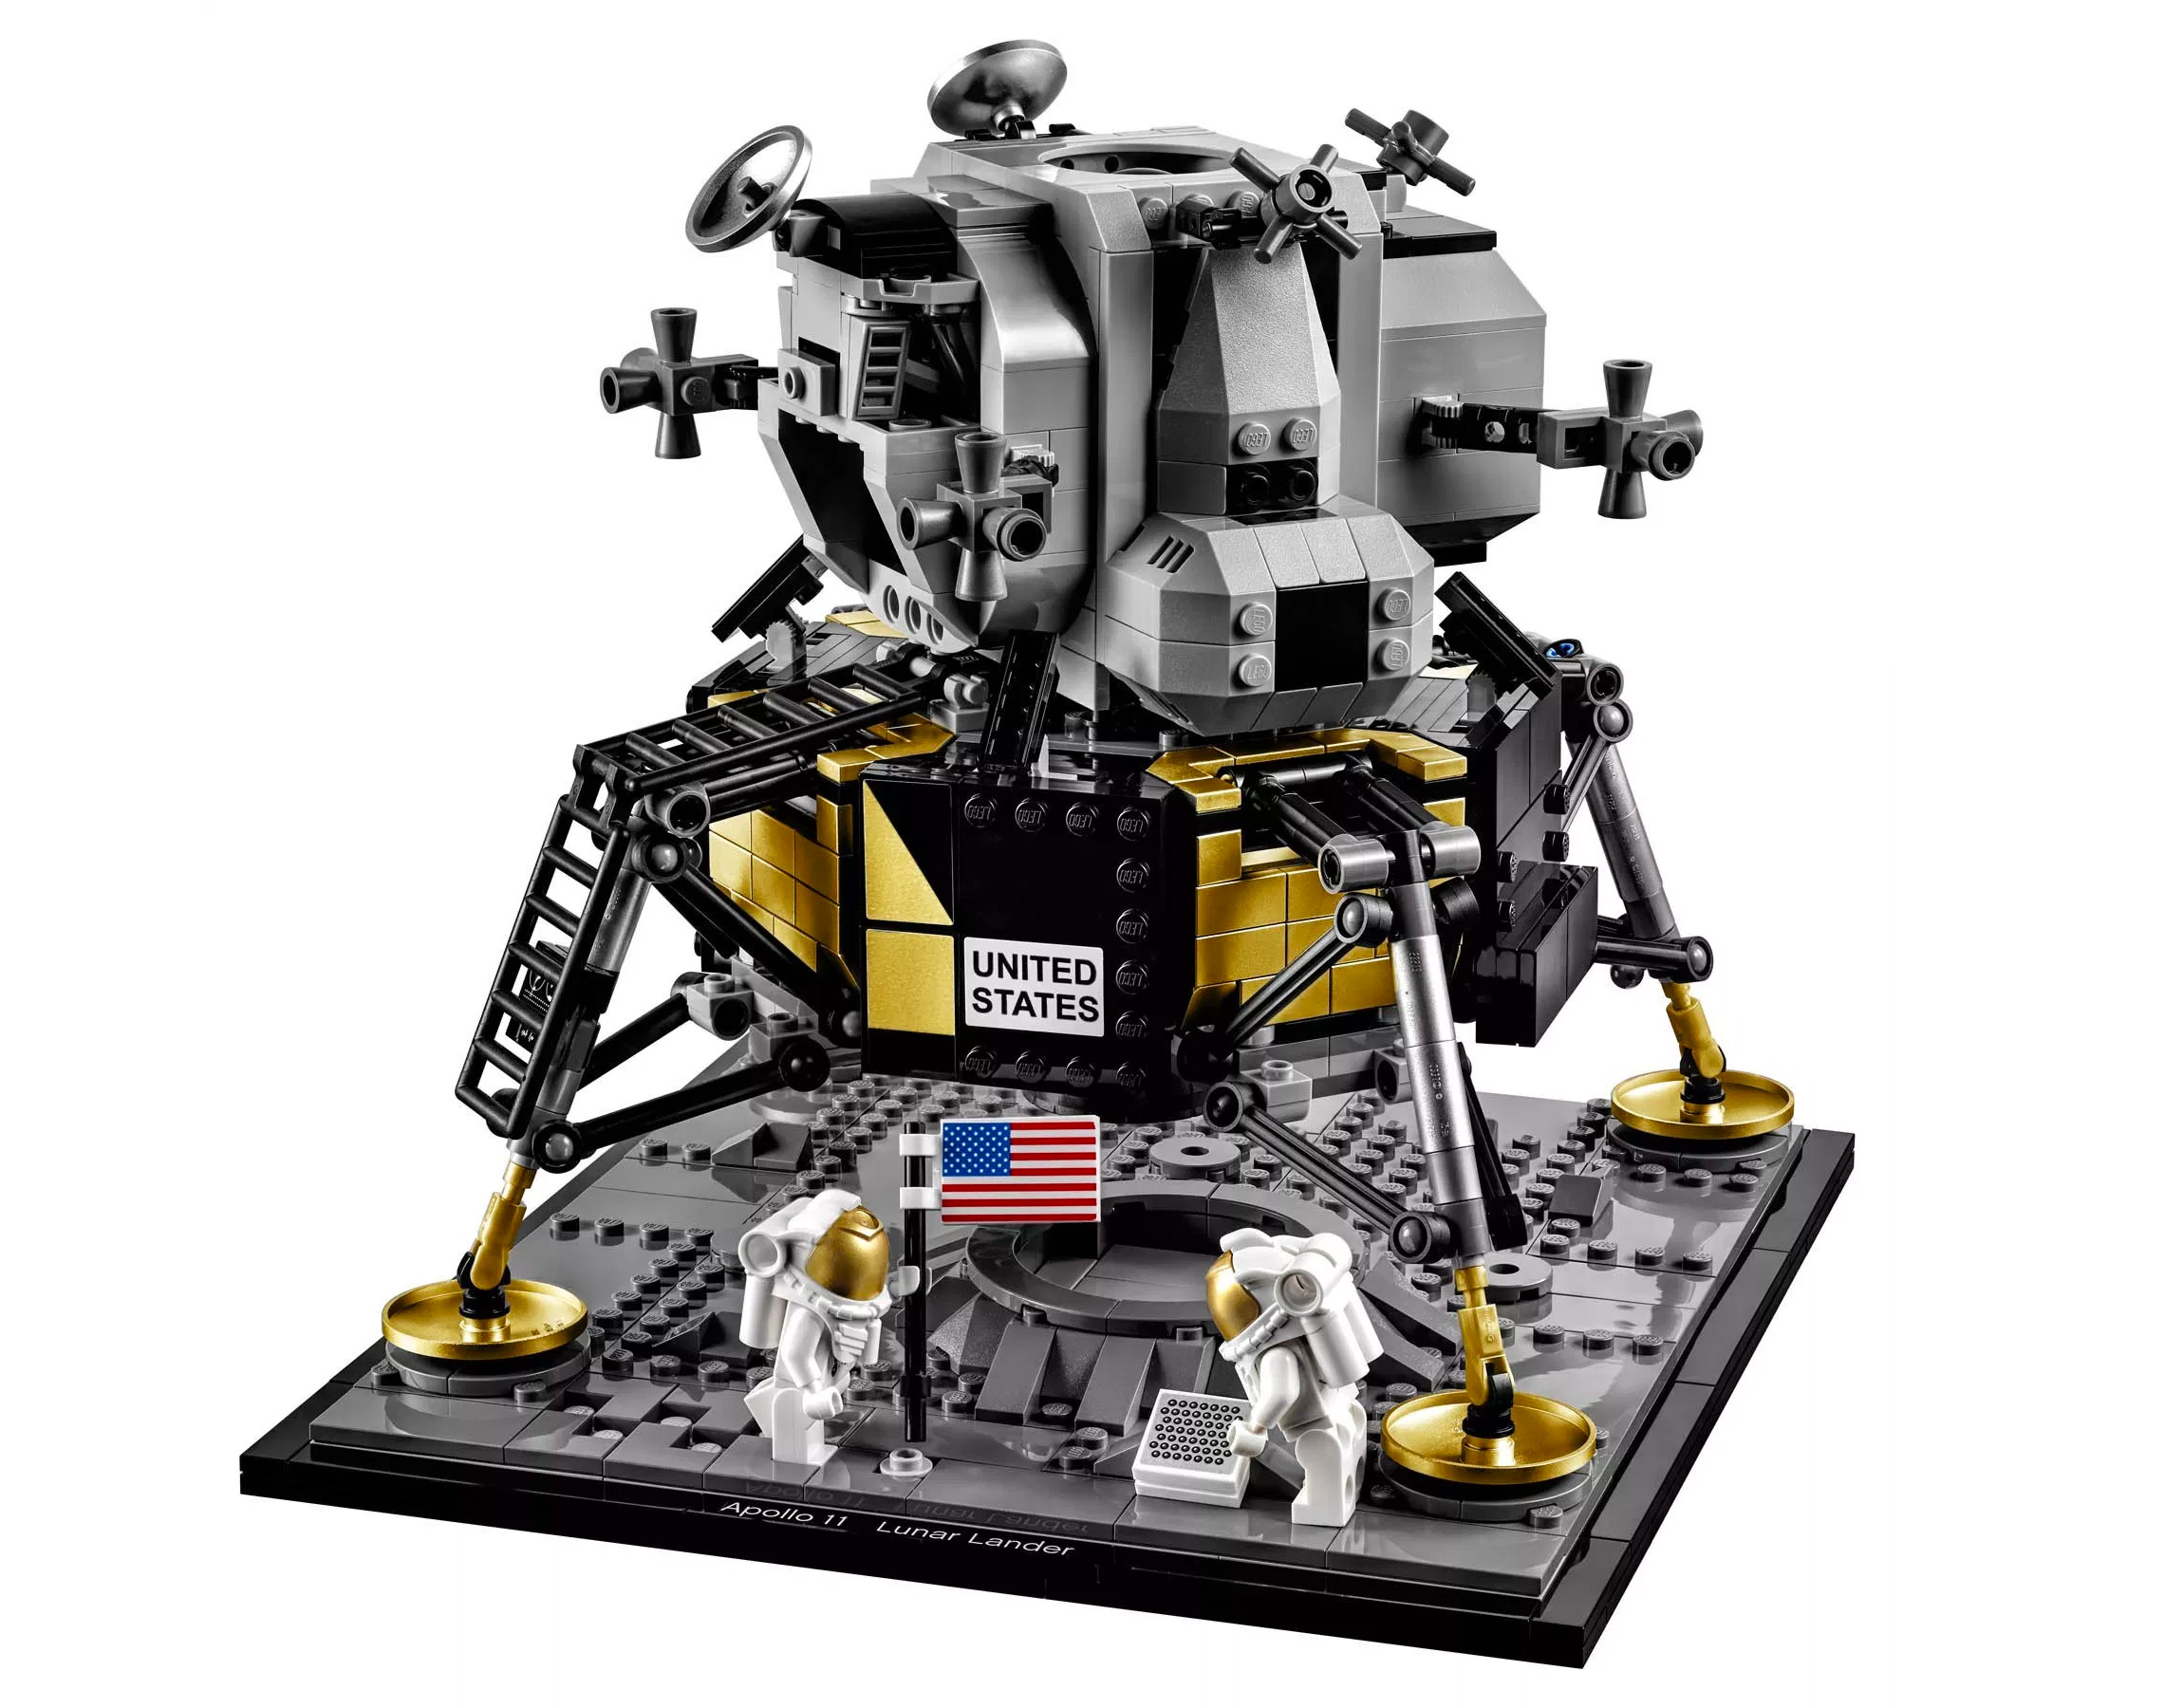 Lego & NASA Team Up On Apollo 11 Lunar Lander Set at werd.com